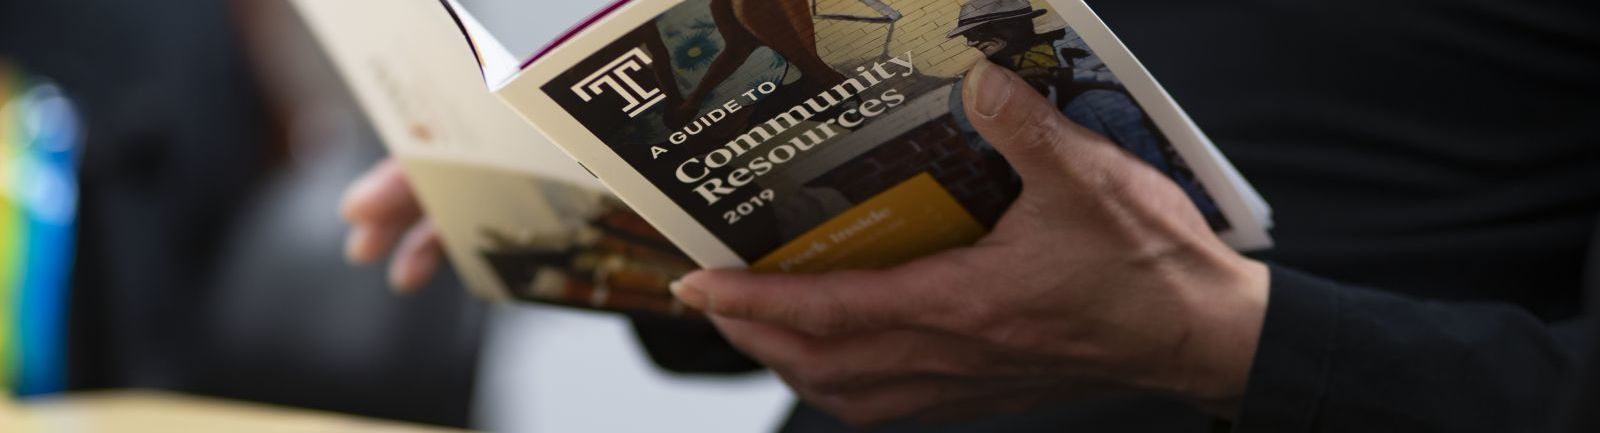 A community member studies a Temple guide to community resources.